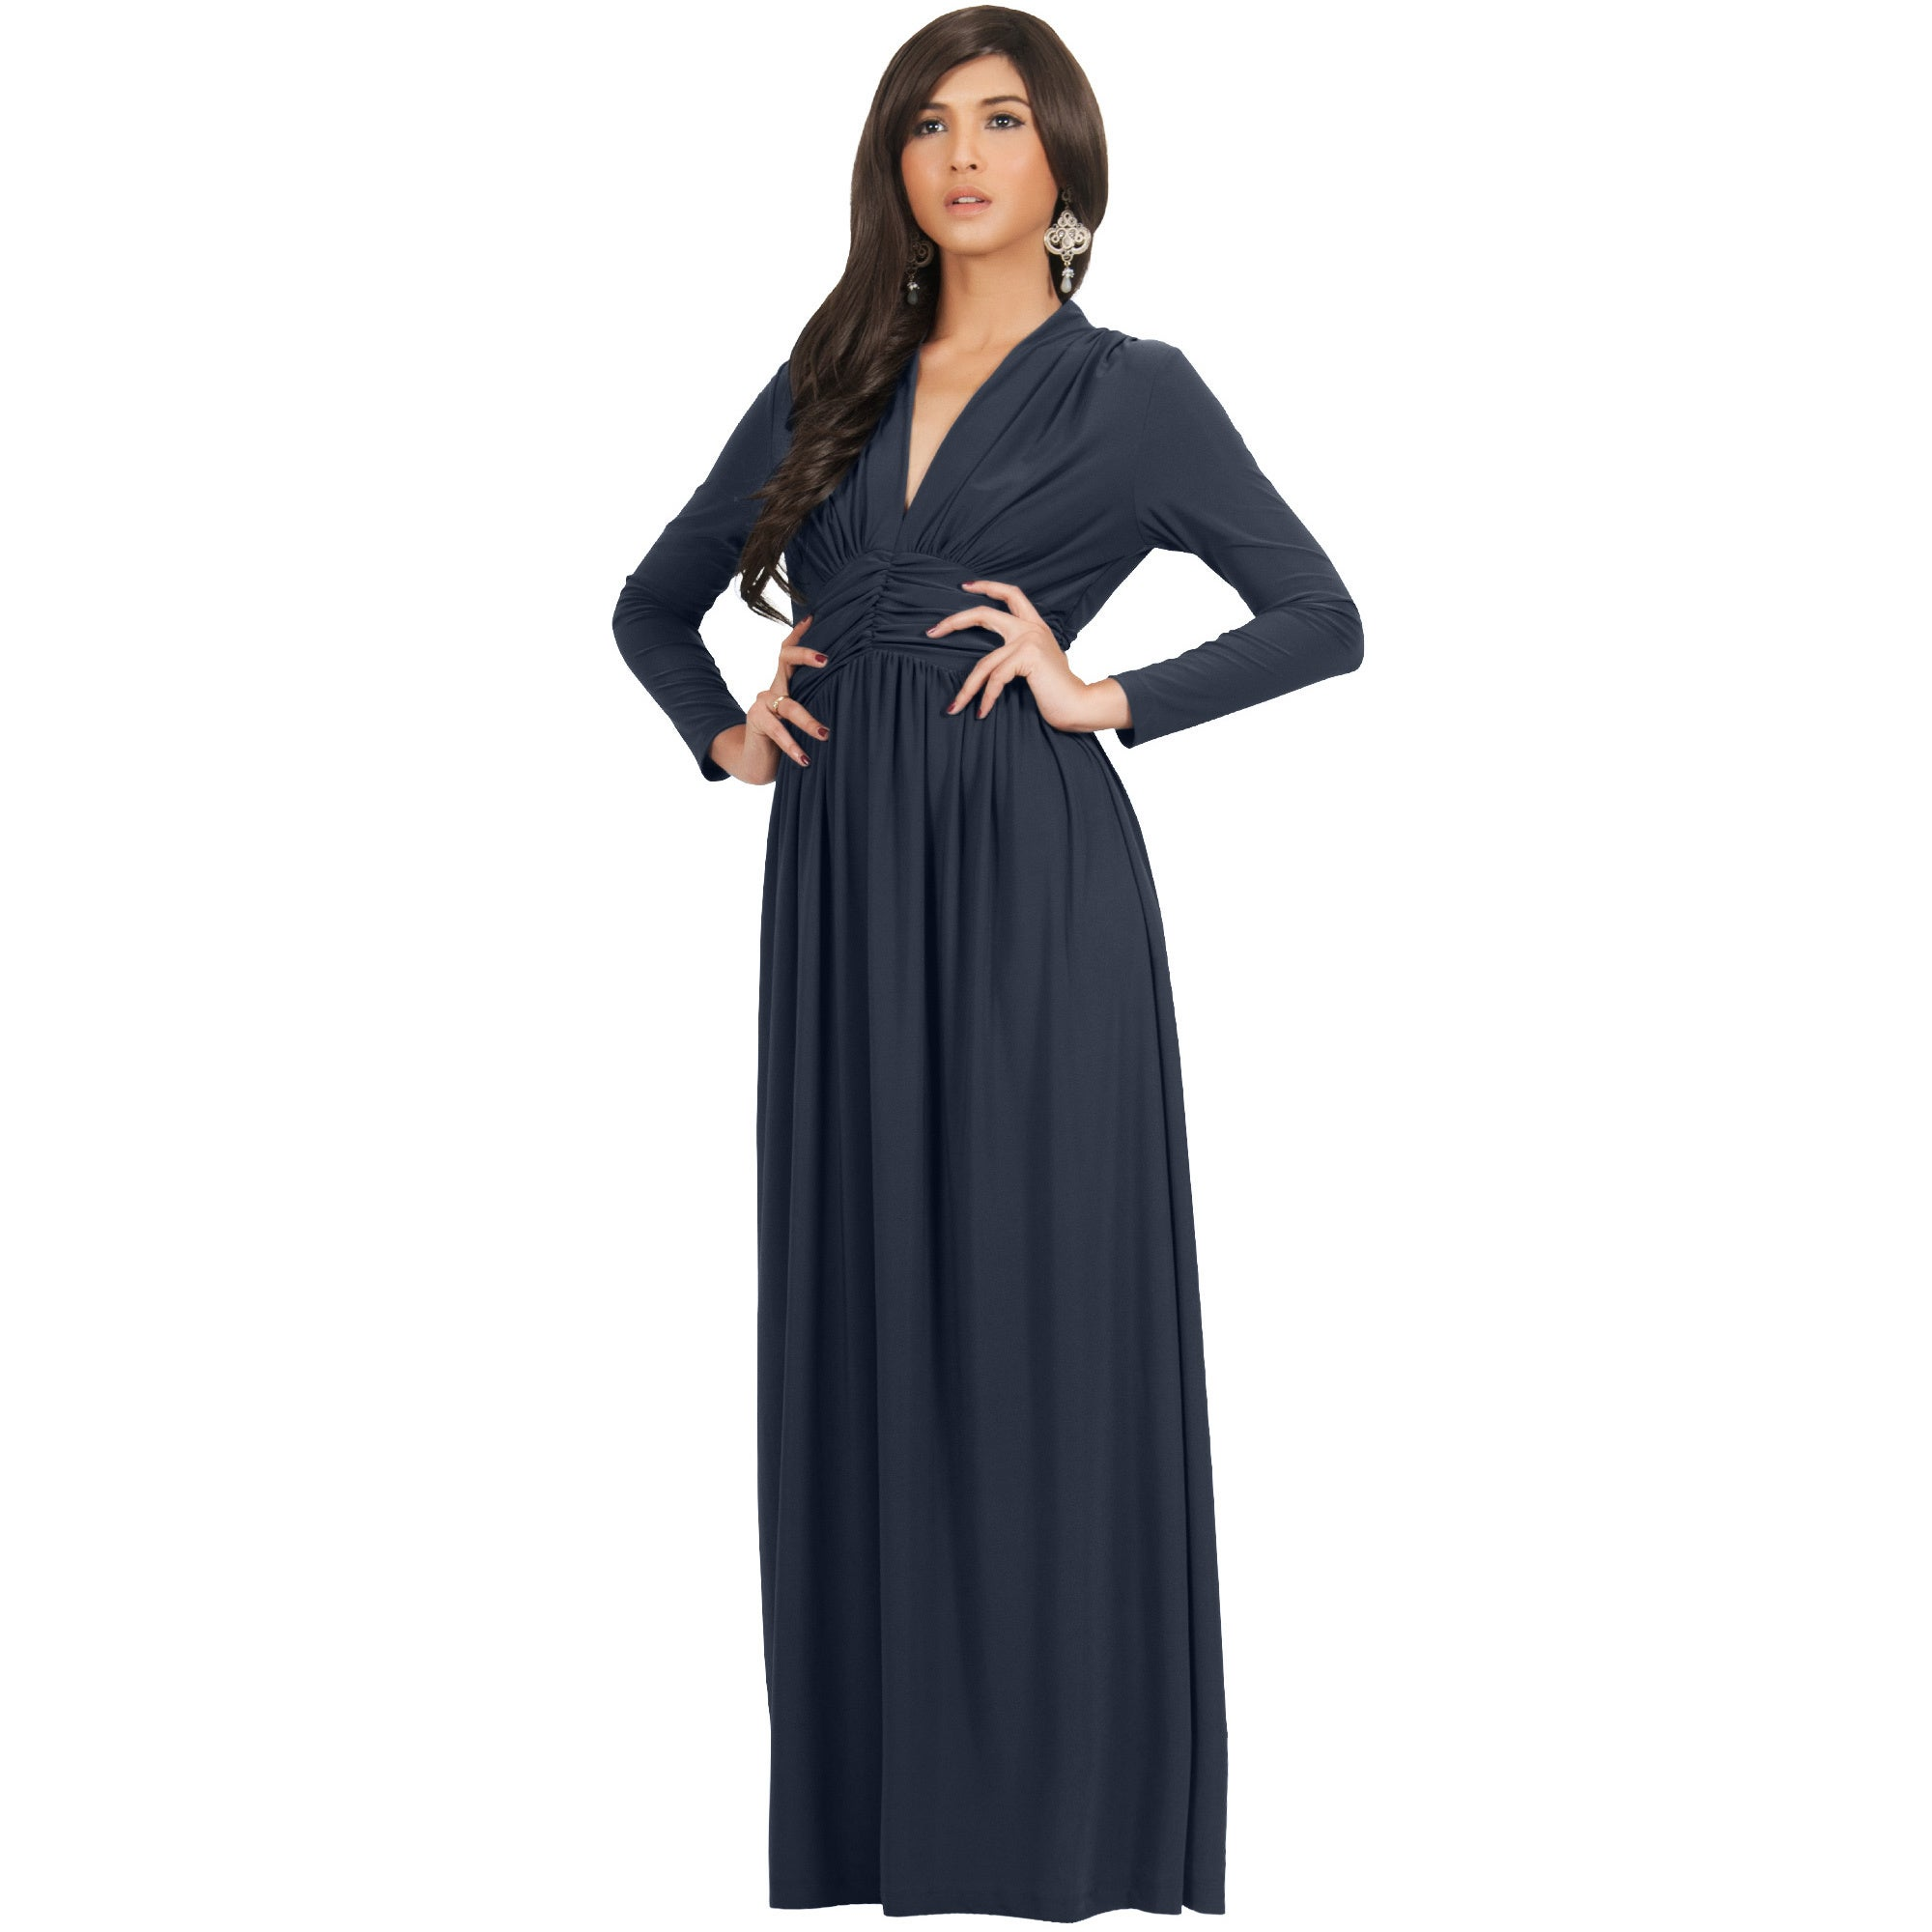 98c9832b98ab Shop KOH KOH Women's Vintage Inspired V-neck Long Sleeve Maxi Dress - Free  Shipping Today - Overstock - 10835718